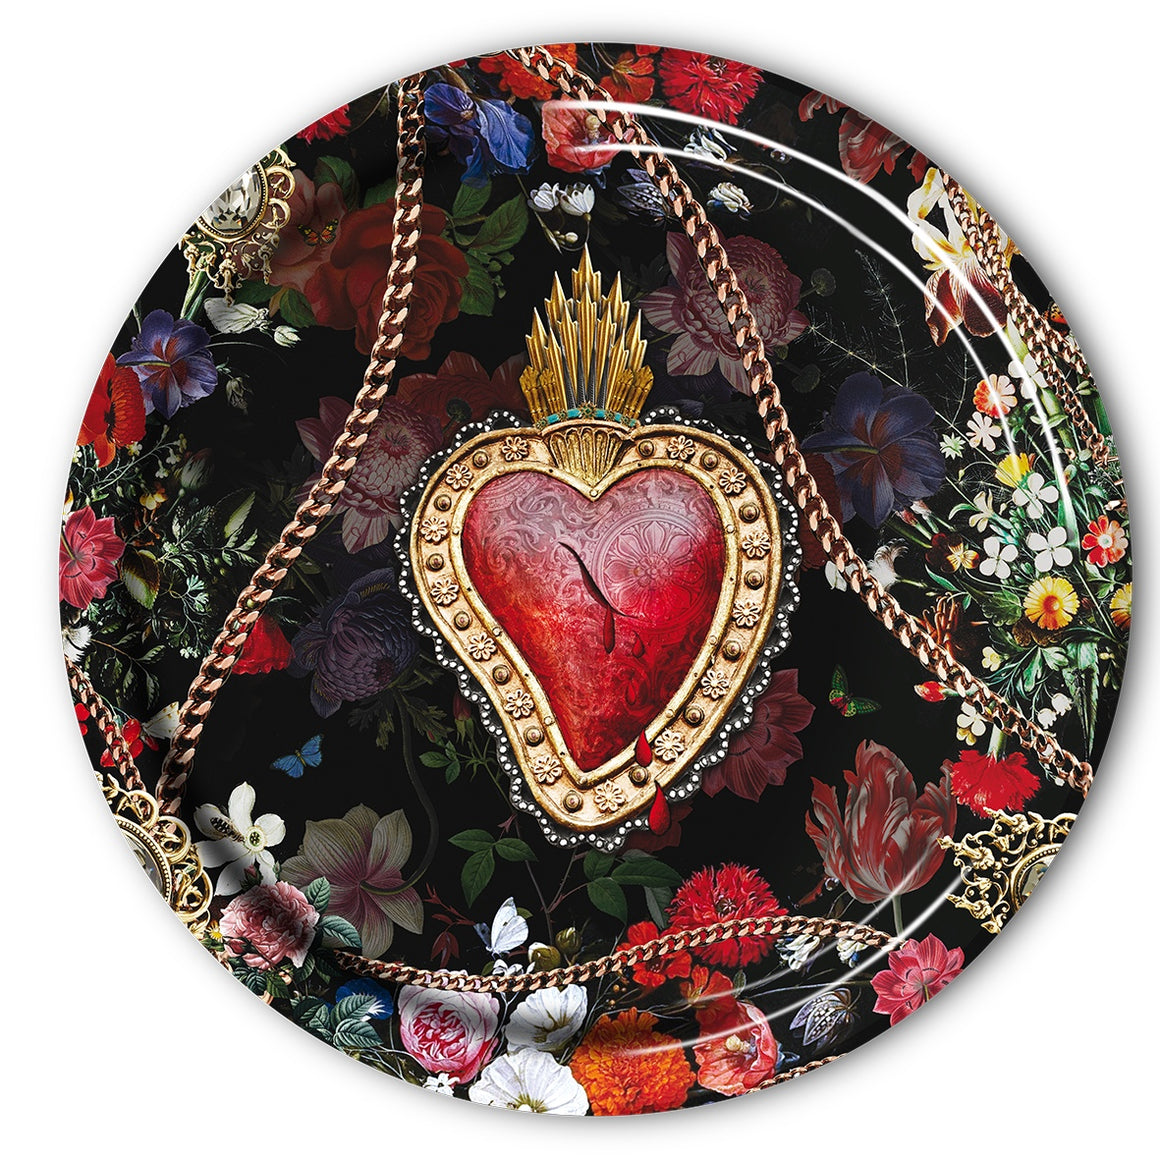 Corazon sacred heart serving tray